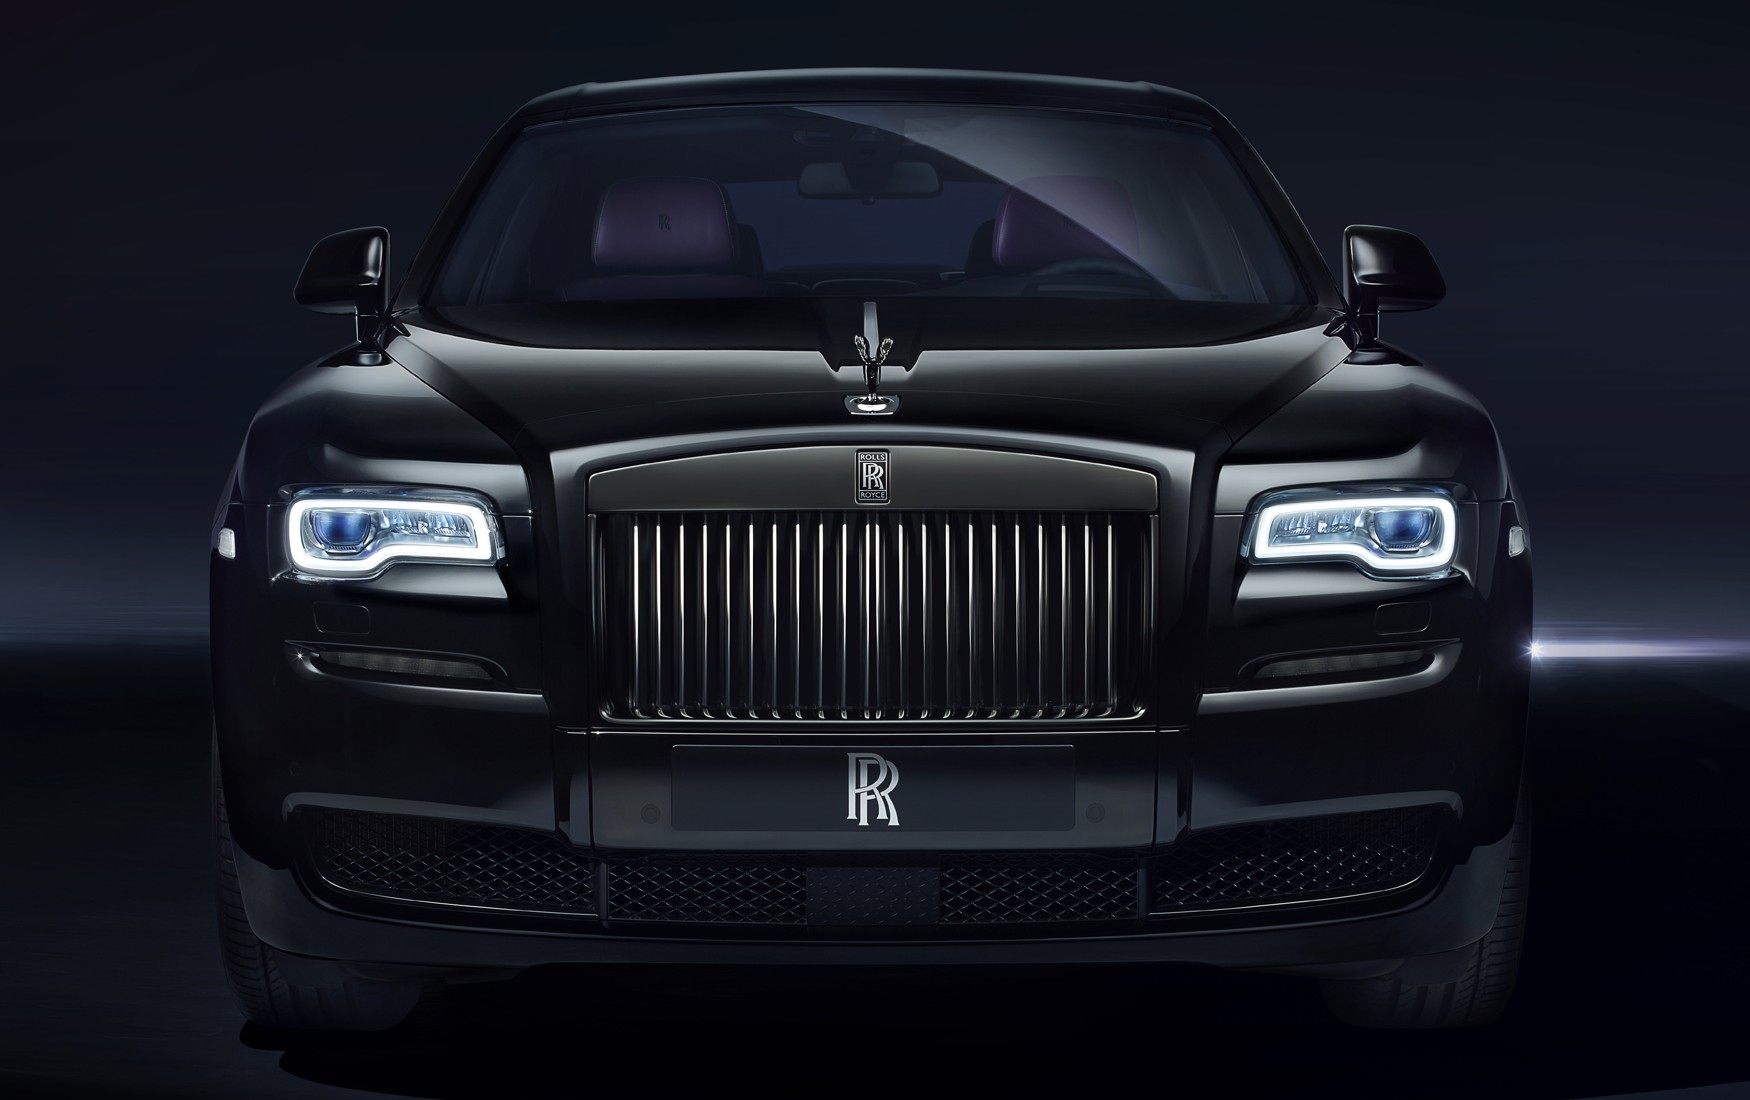 Rolls Royce Introduces New Black Badge Trim For Ghost And